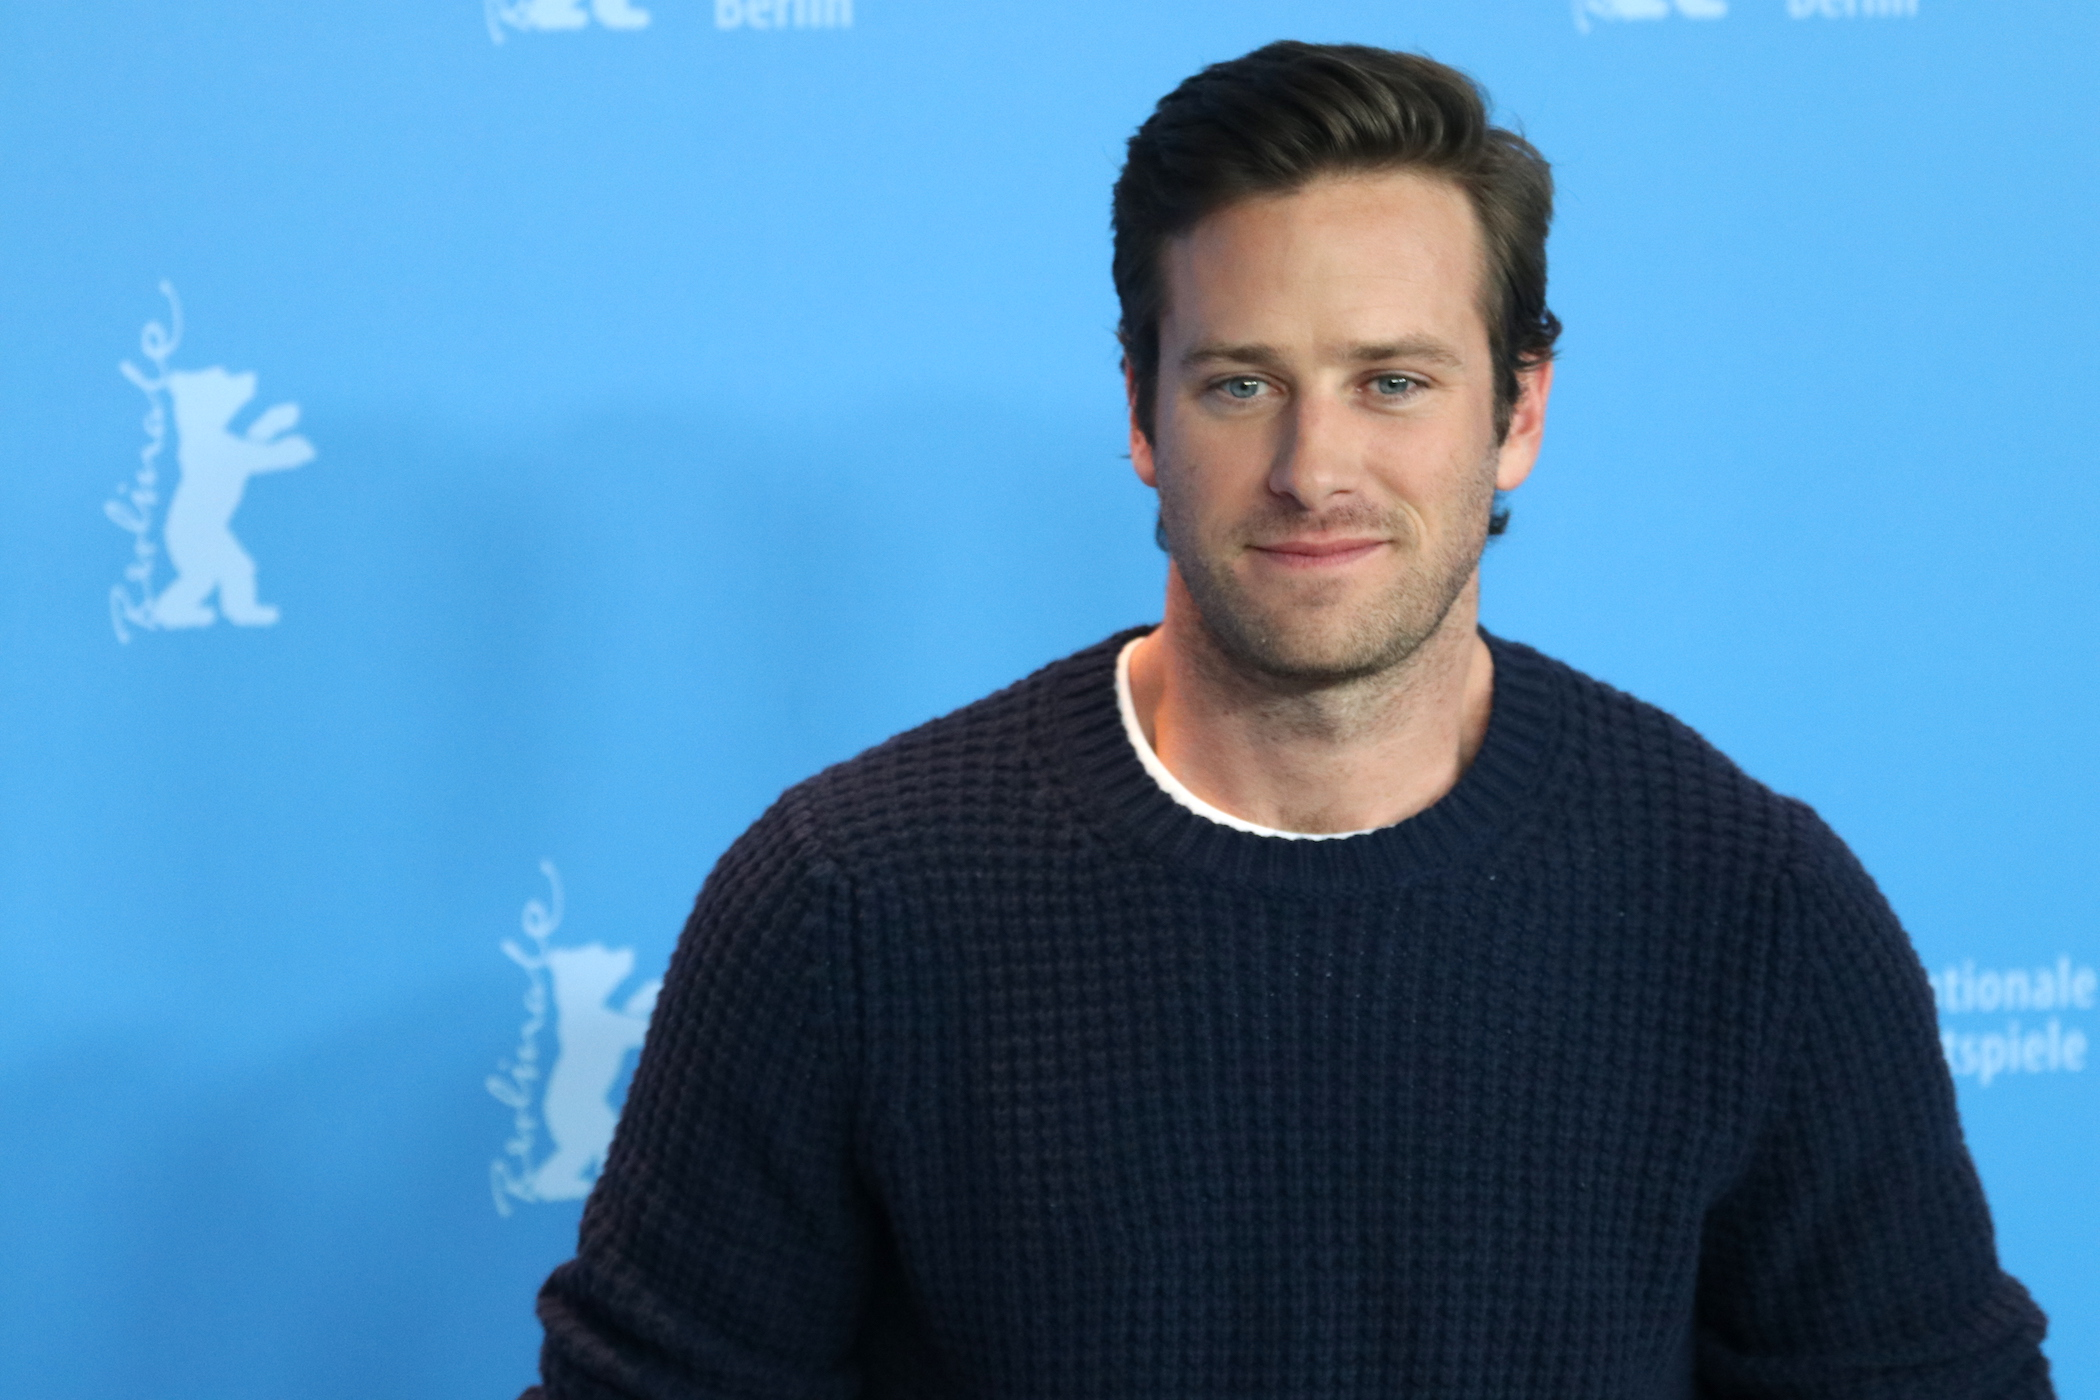 Berlino 2017: Armie Hammer al photocall di Final Portrait